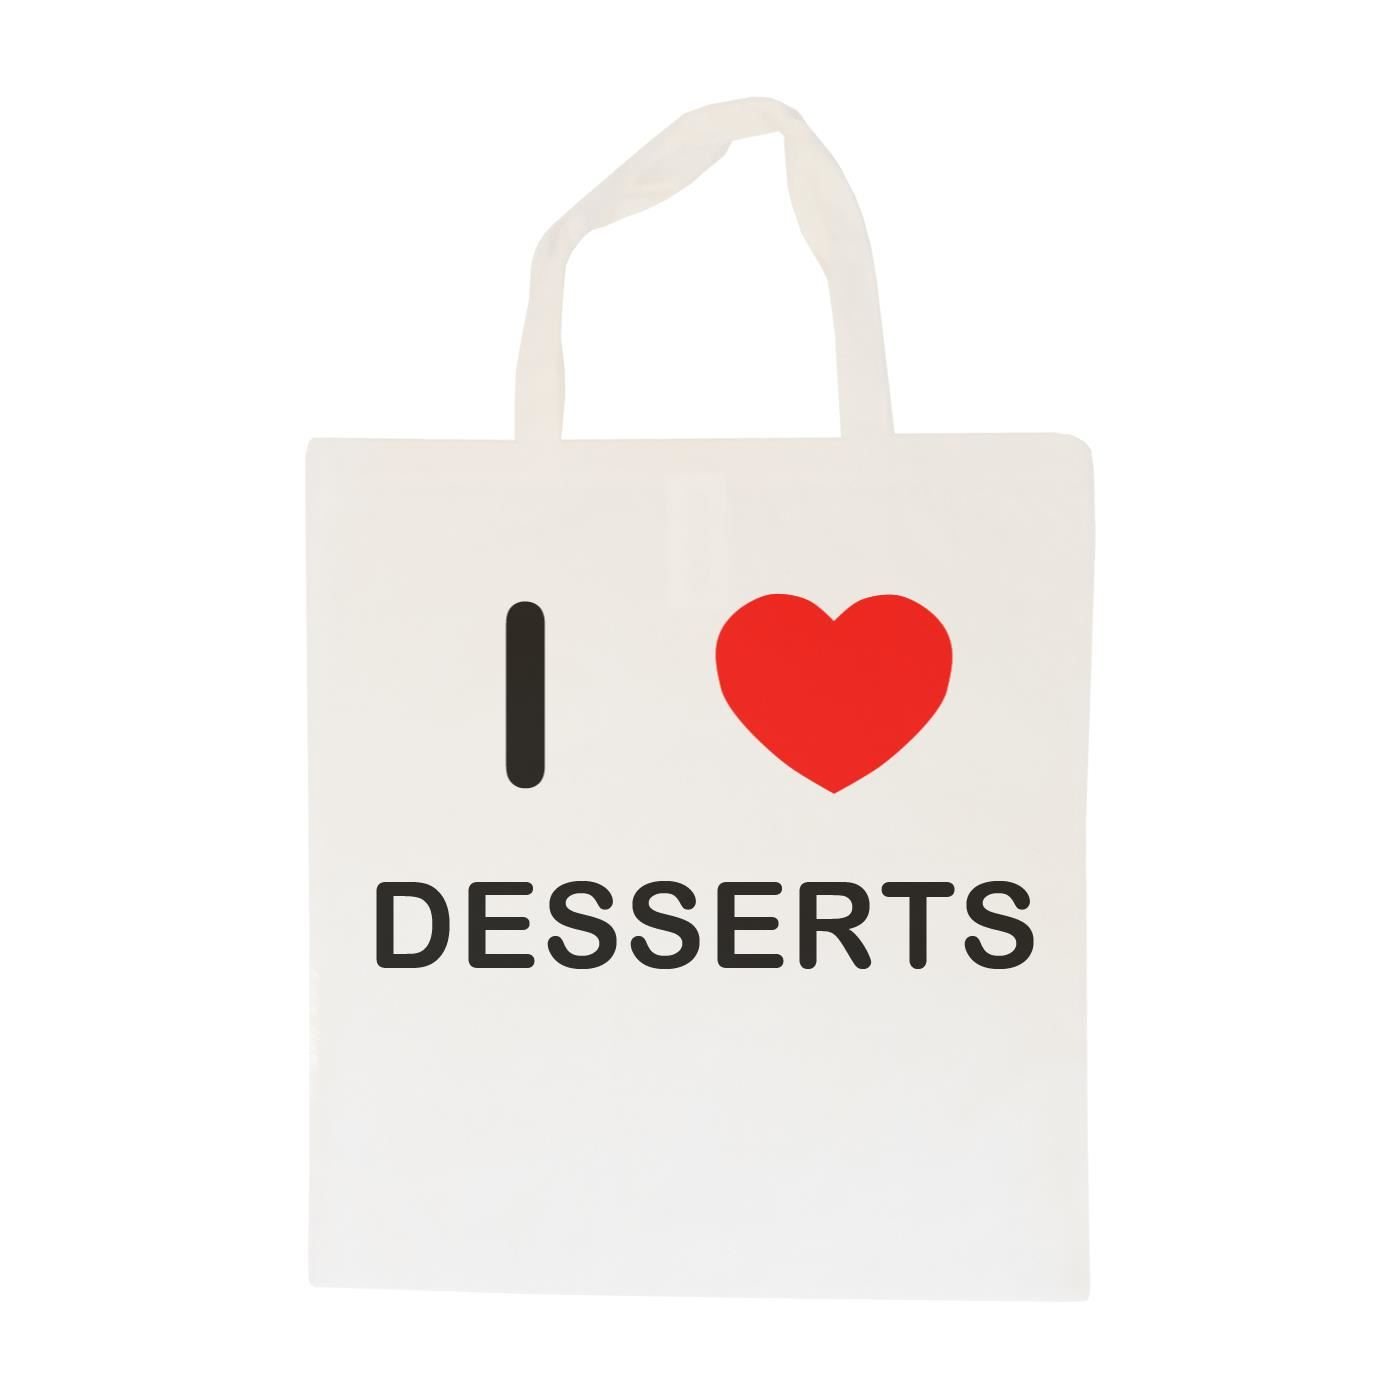 I Love Desserts - Cotton Bag | Size choice Tote, Shopper or Sling